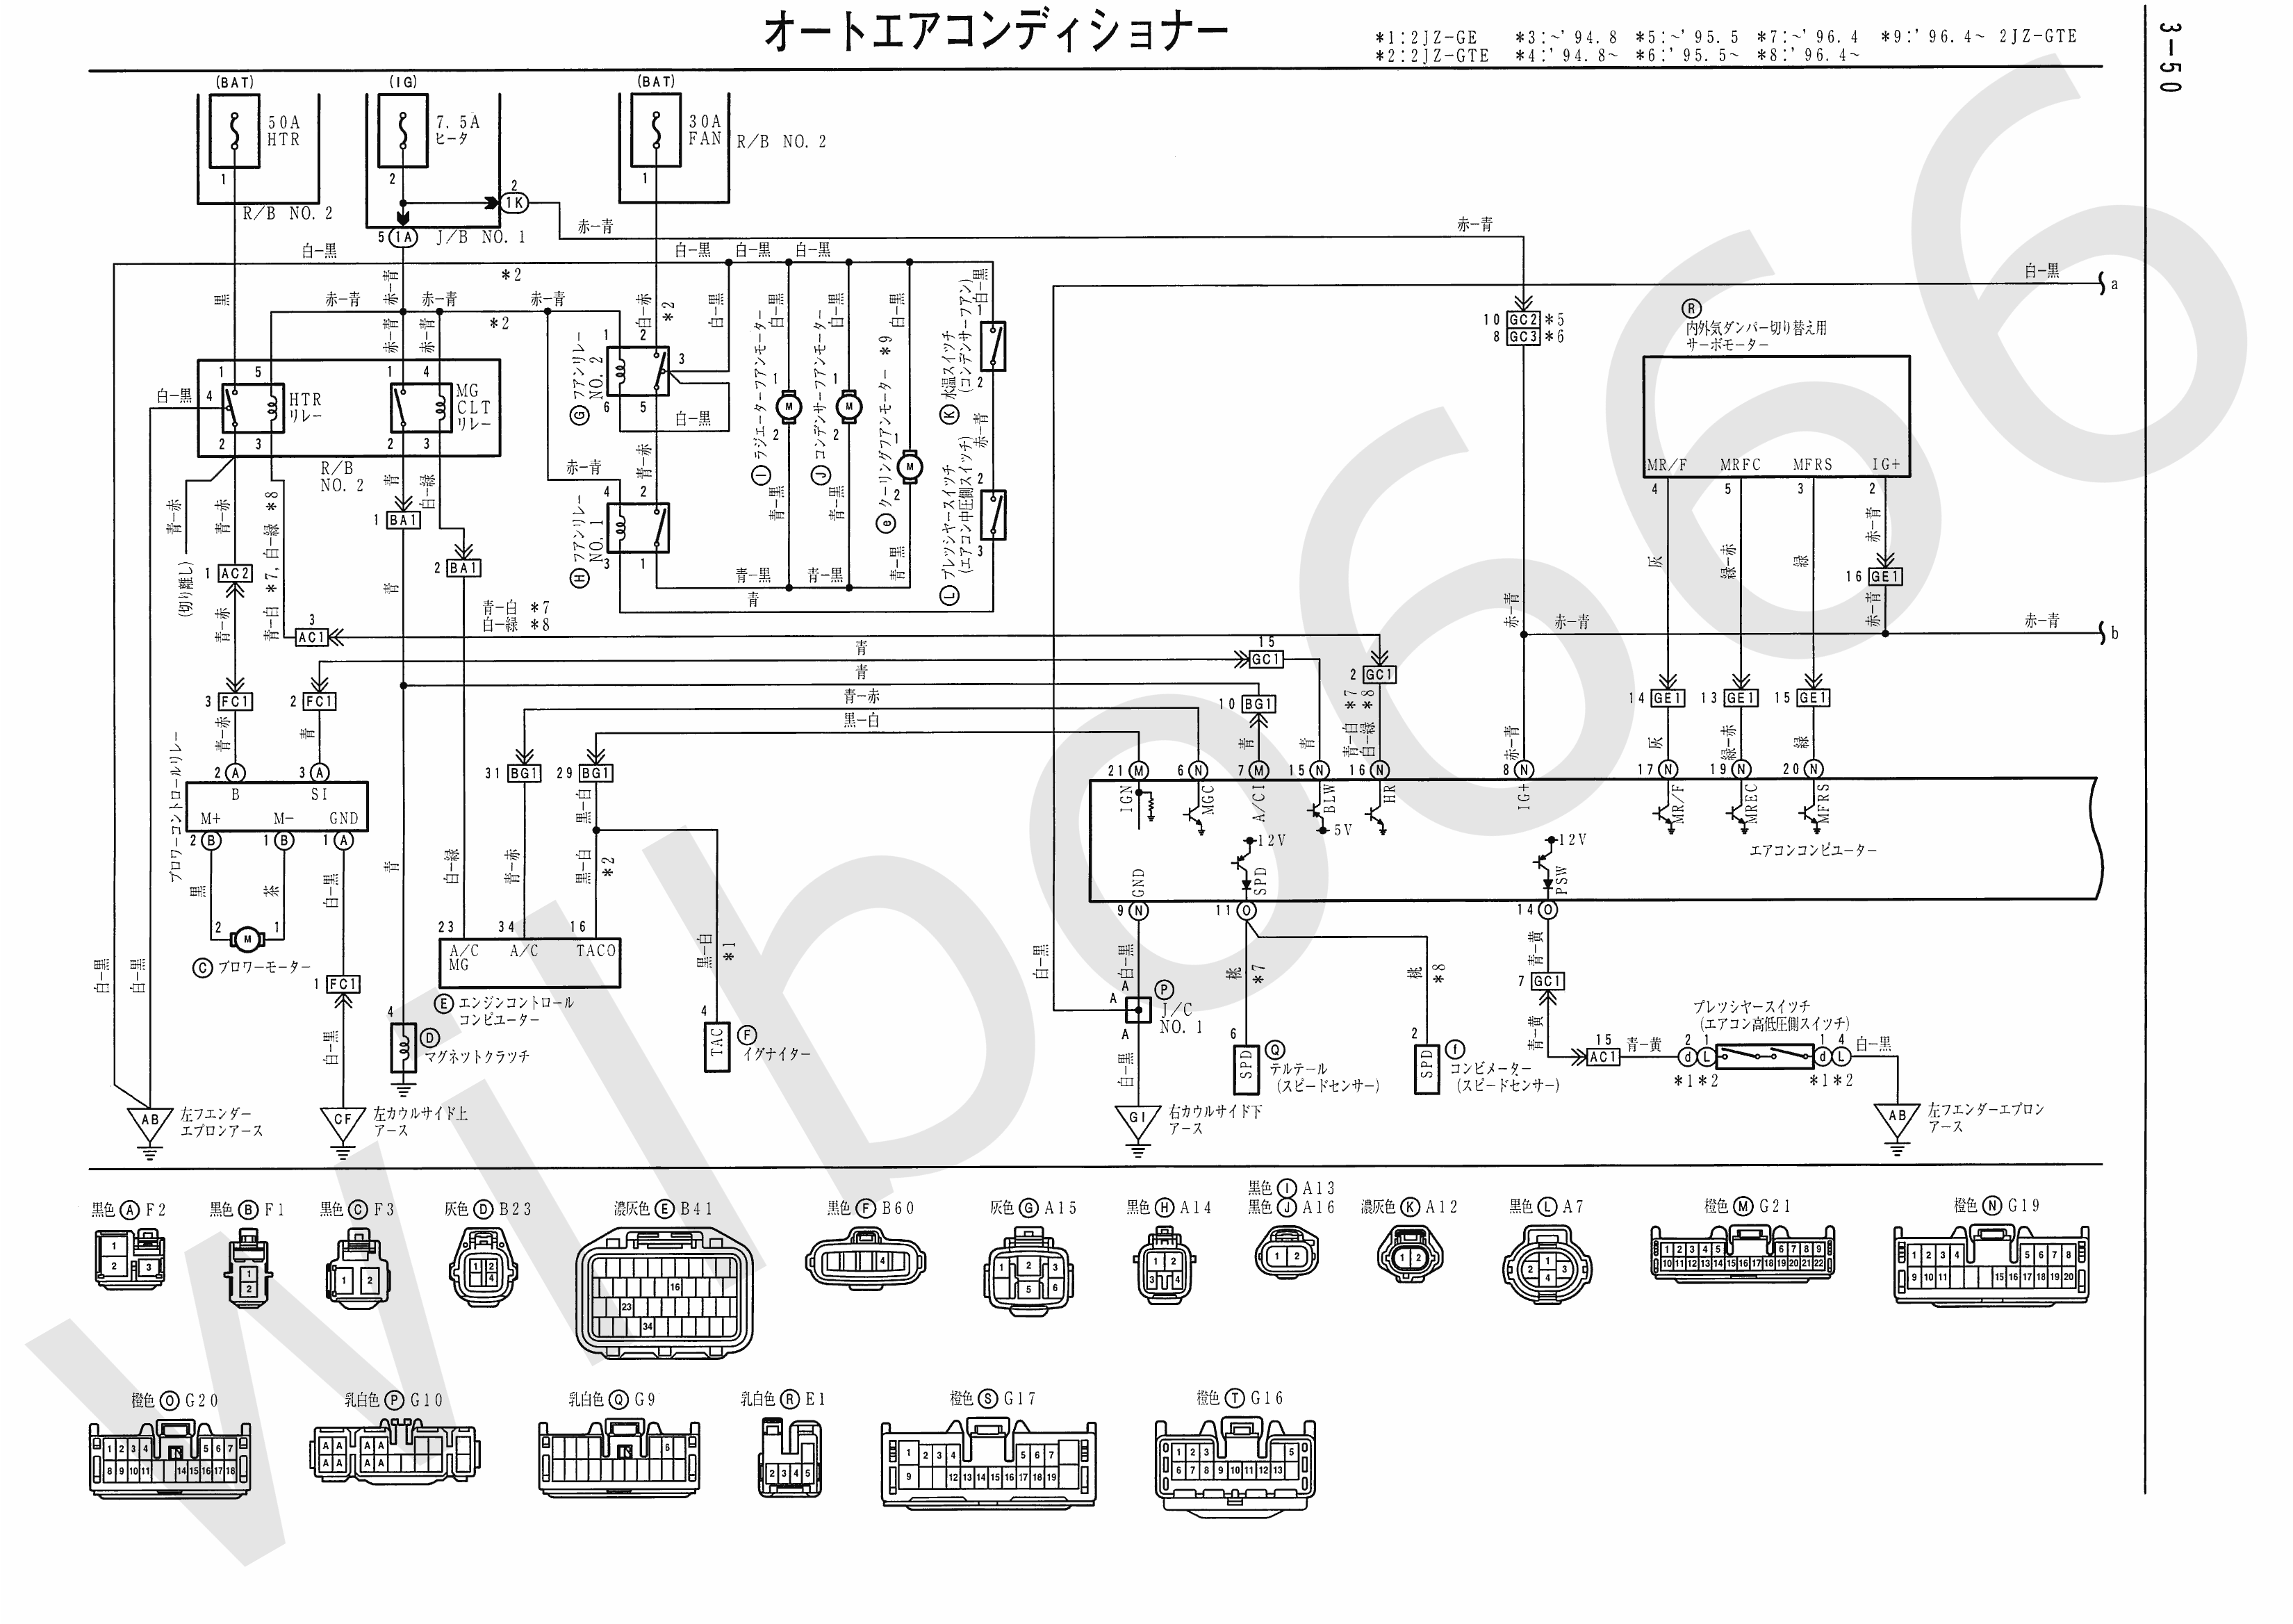 1999 Toyota Supra Engine Diagram Wiring Diagram Explained Explained Led Illumina It